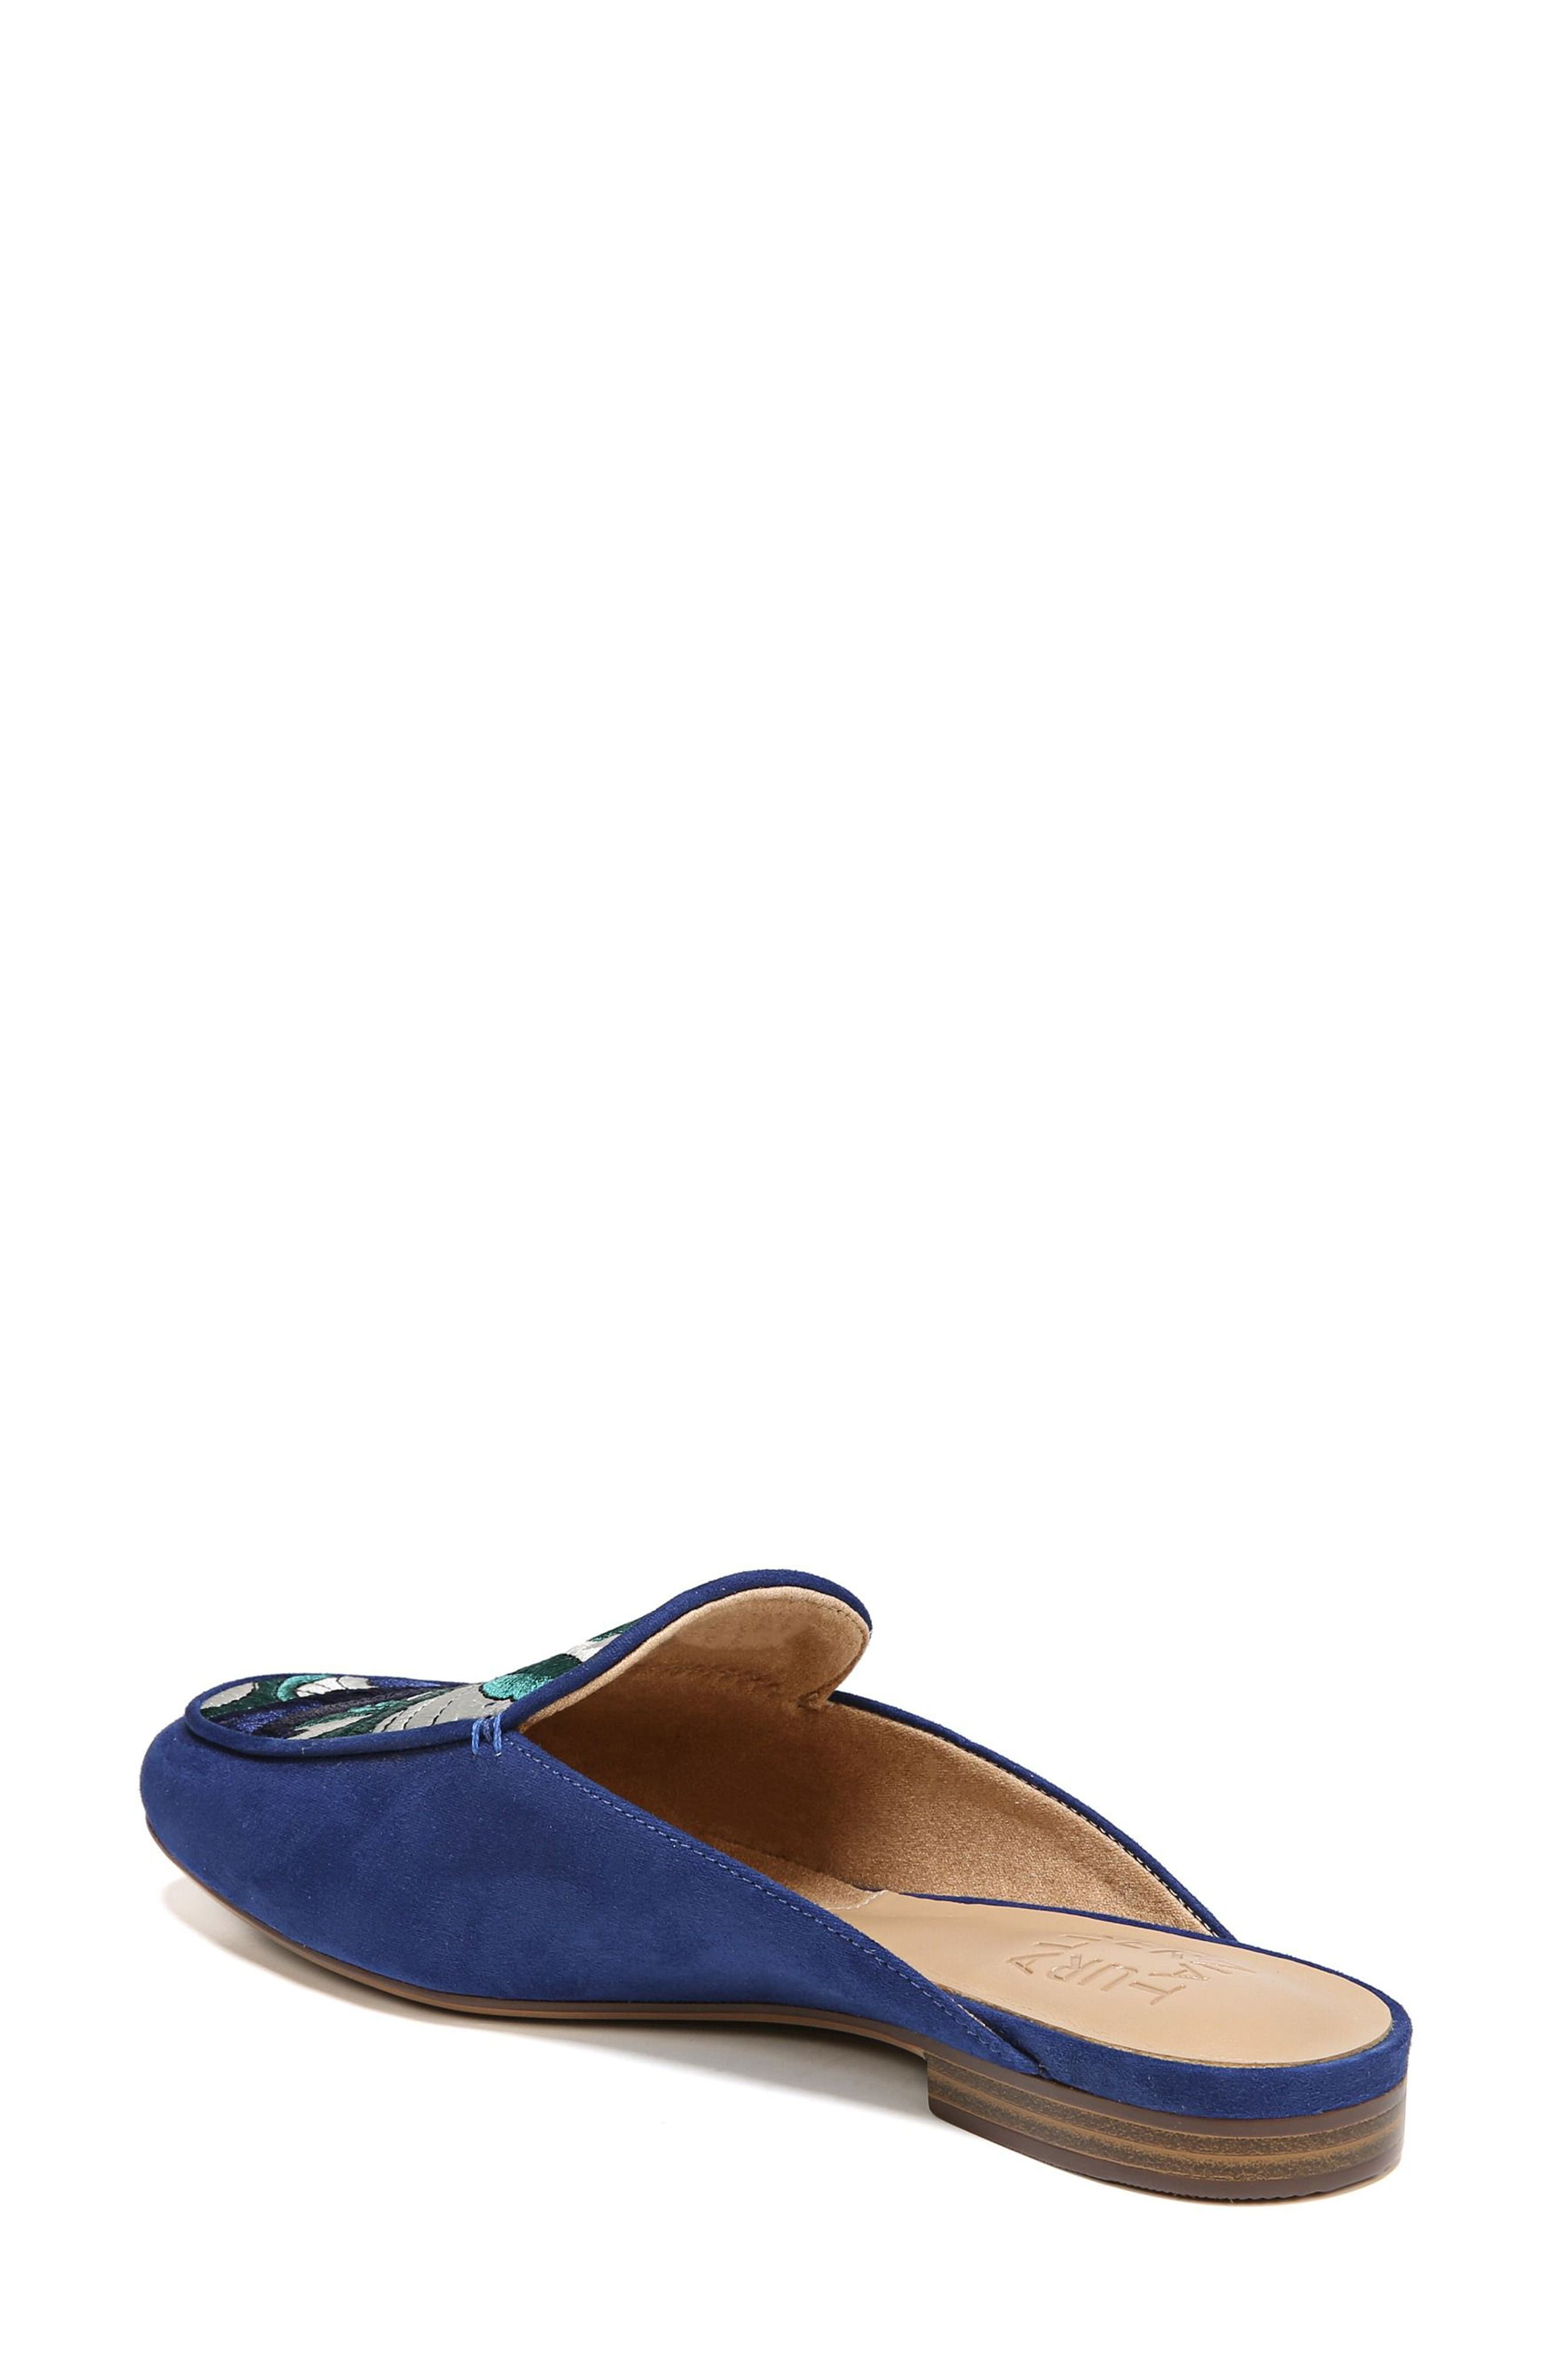 NATURALIZER,                             Eden II Embroidered Mule,                             Alternate thumbnail 2, color,                             SAPPHIRE FABRIC